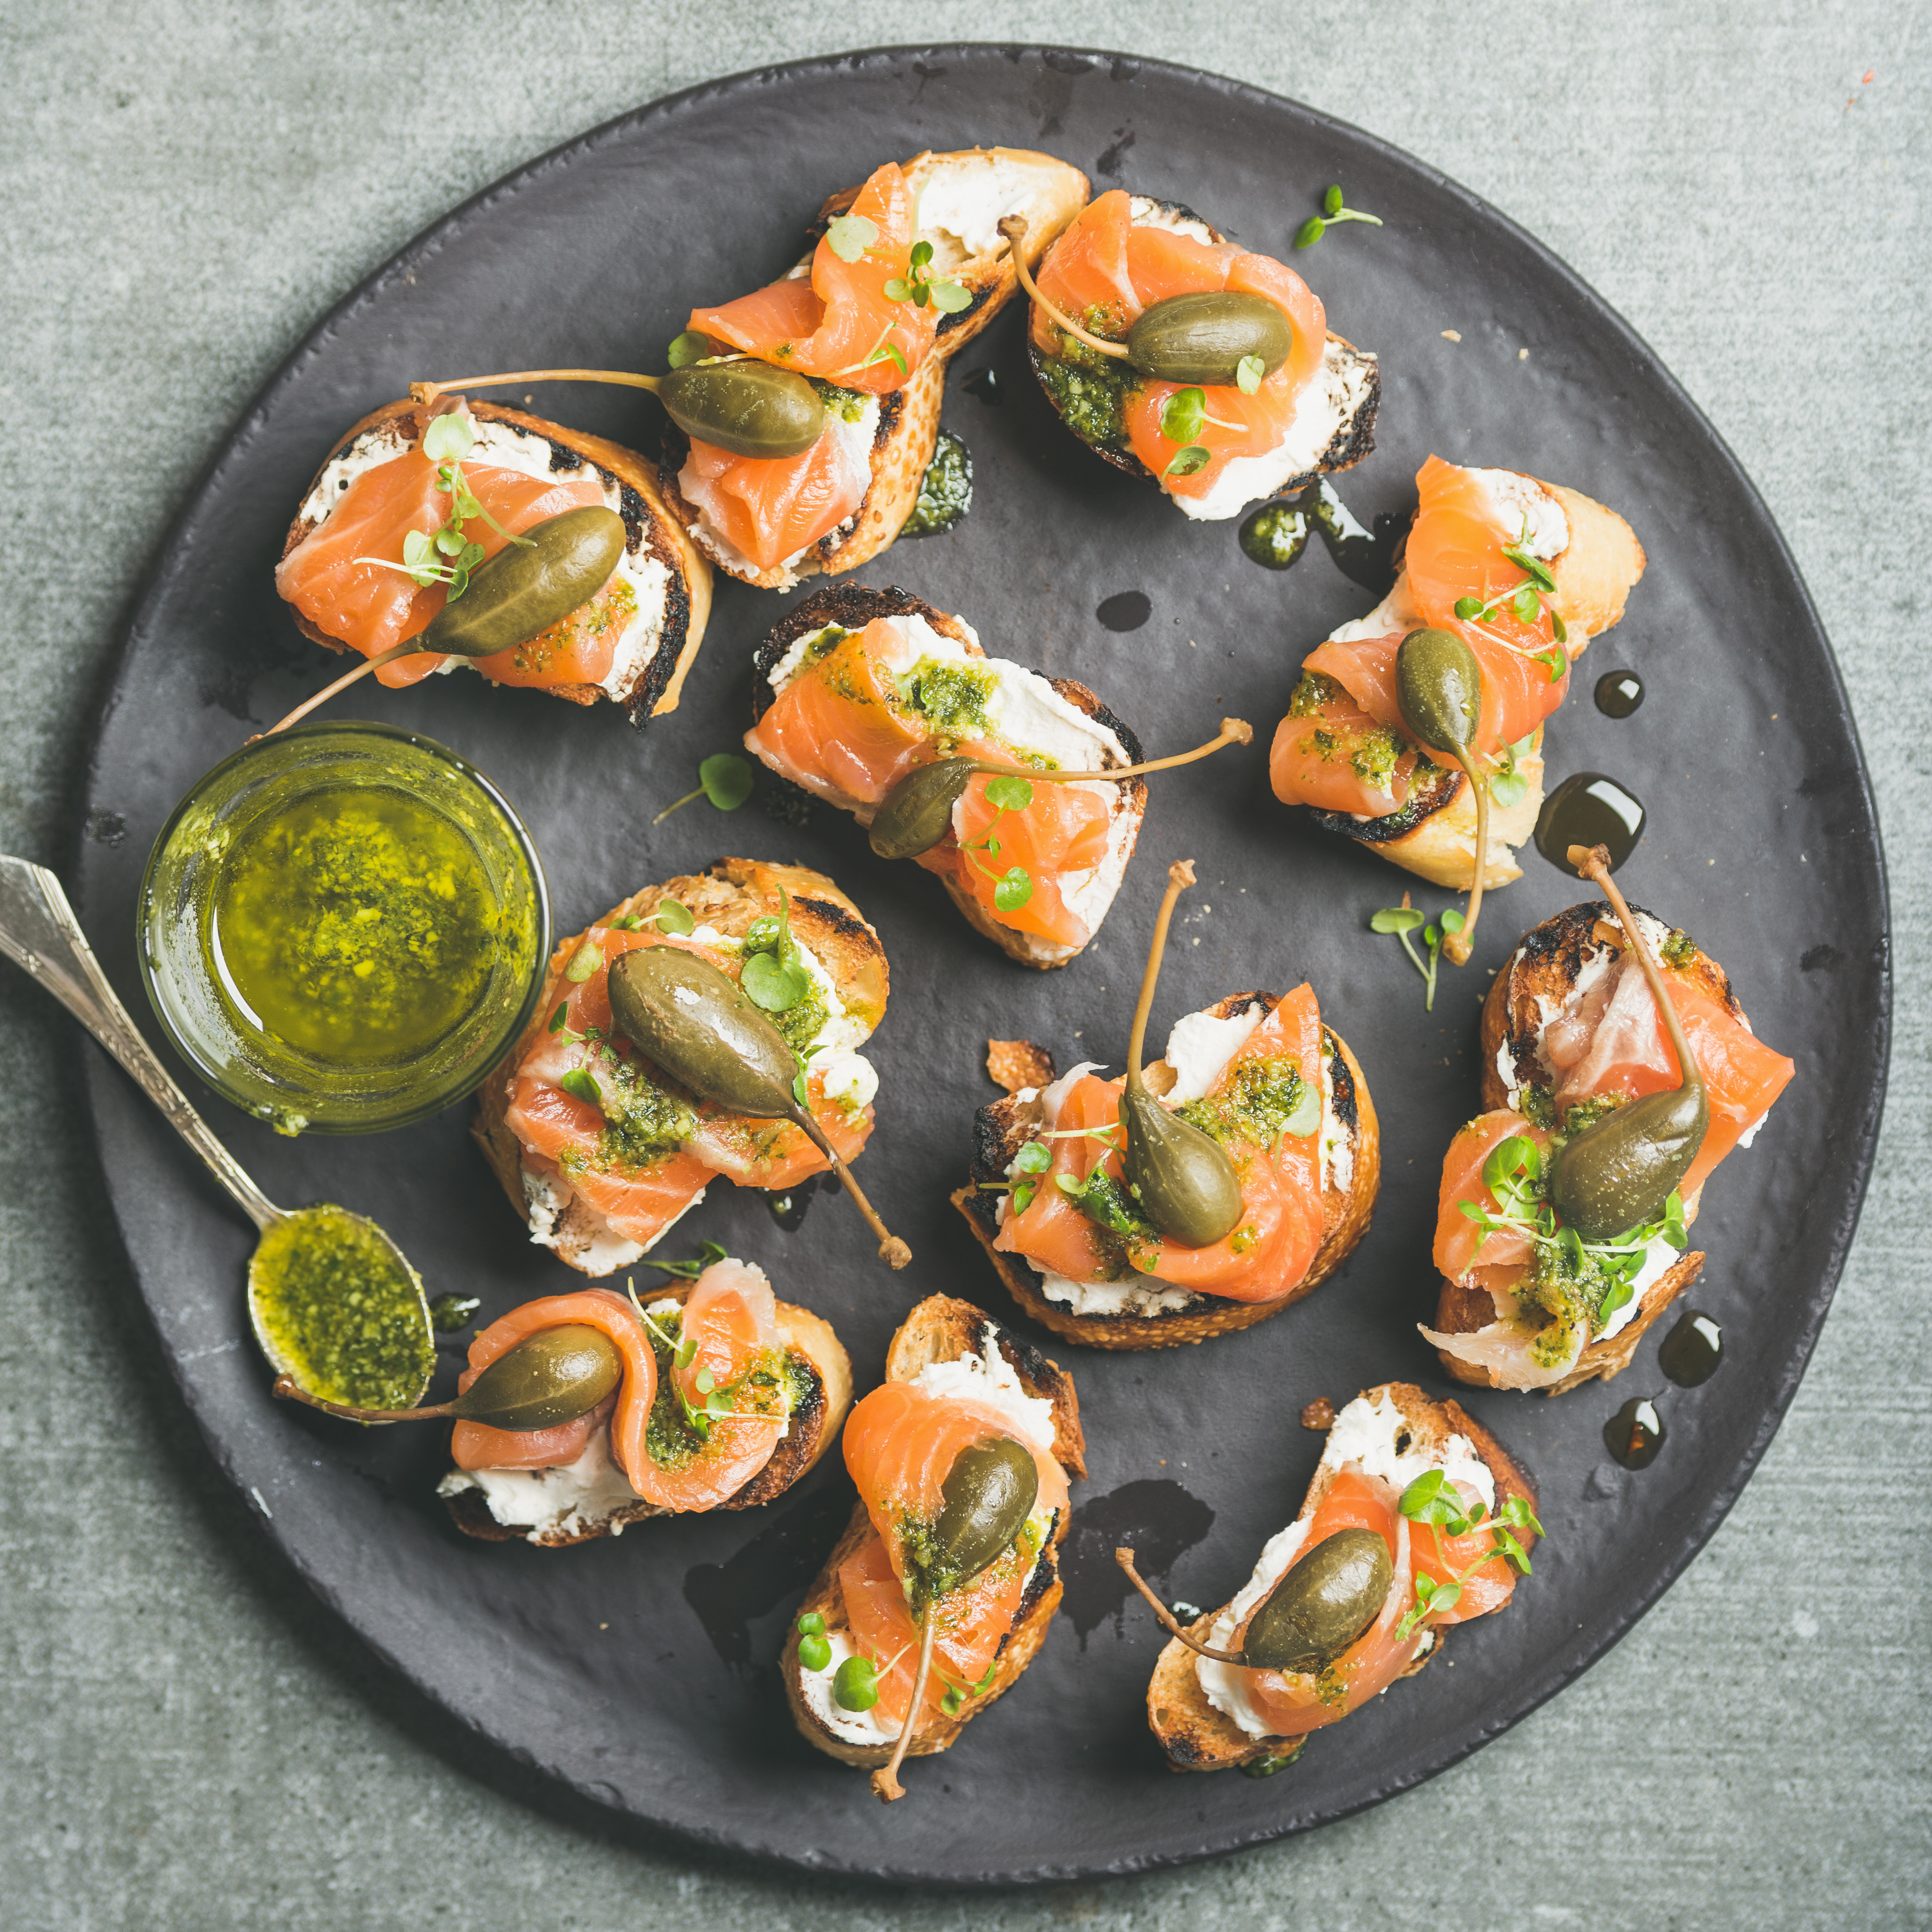 Homemade salmon crostini with cream-cheese, watercress, capers and pesto suace in round black slate stone plate over grey background, top view, square crop